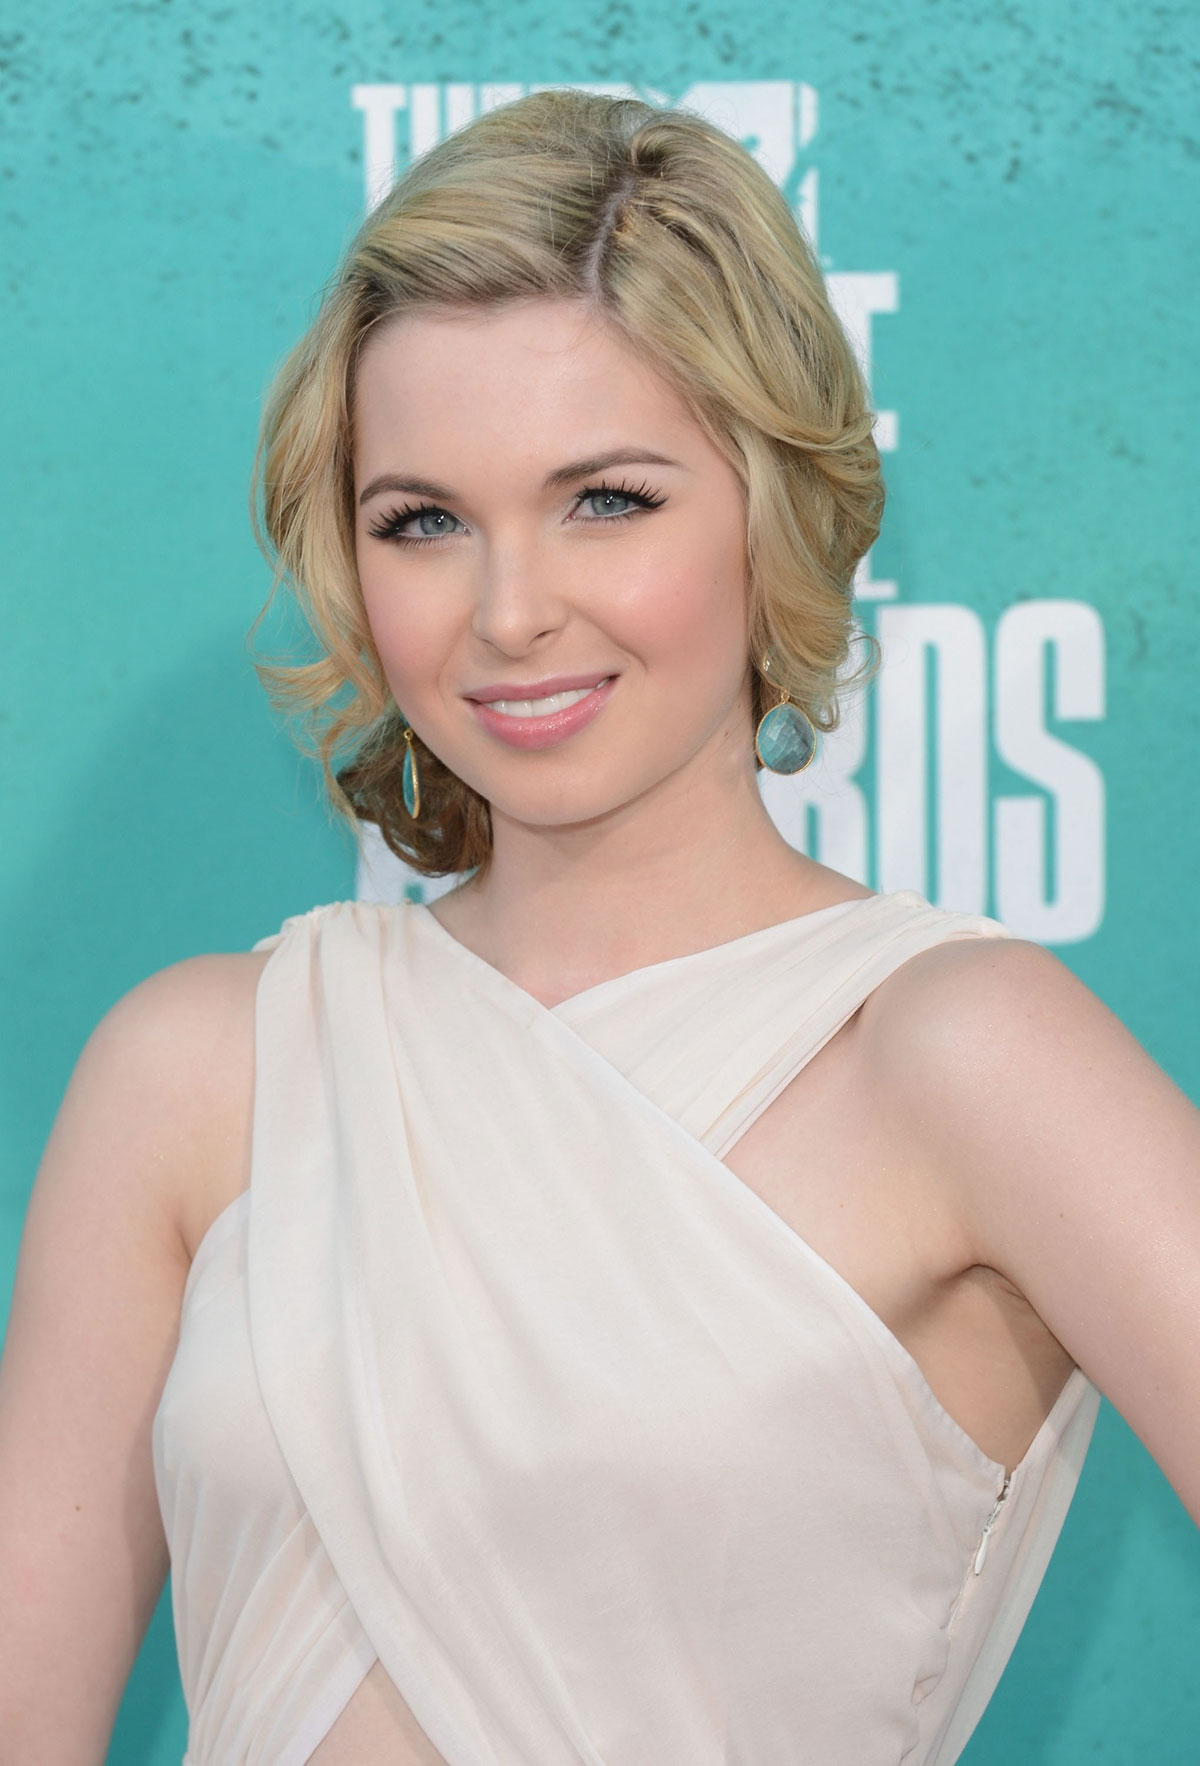 Kirsten Prout nudes (96 photos), Topless, Paparazzi, Boobs, lingerie 2015